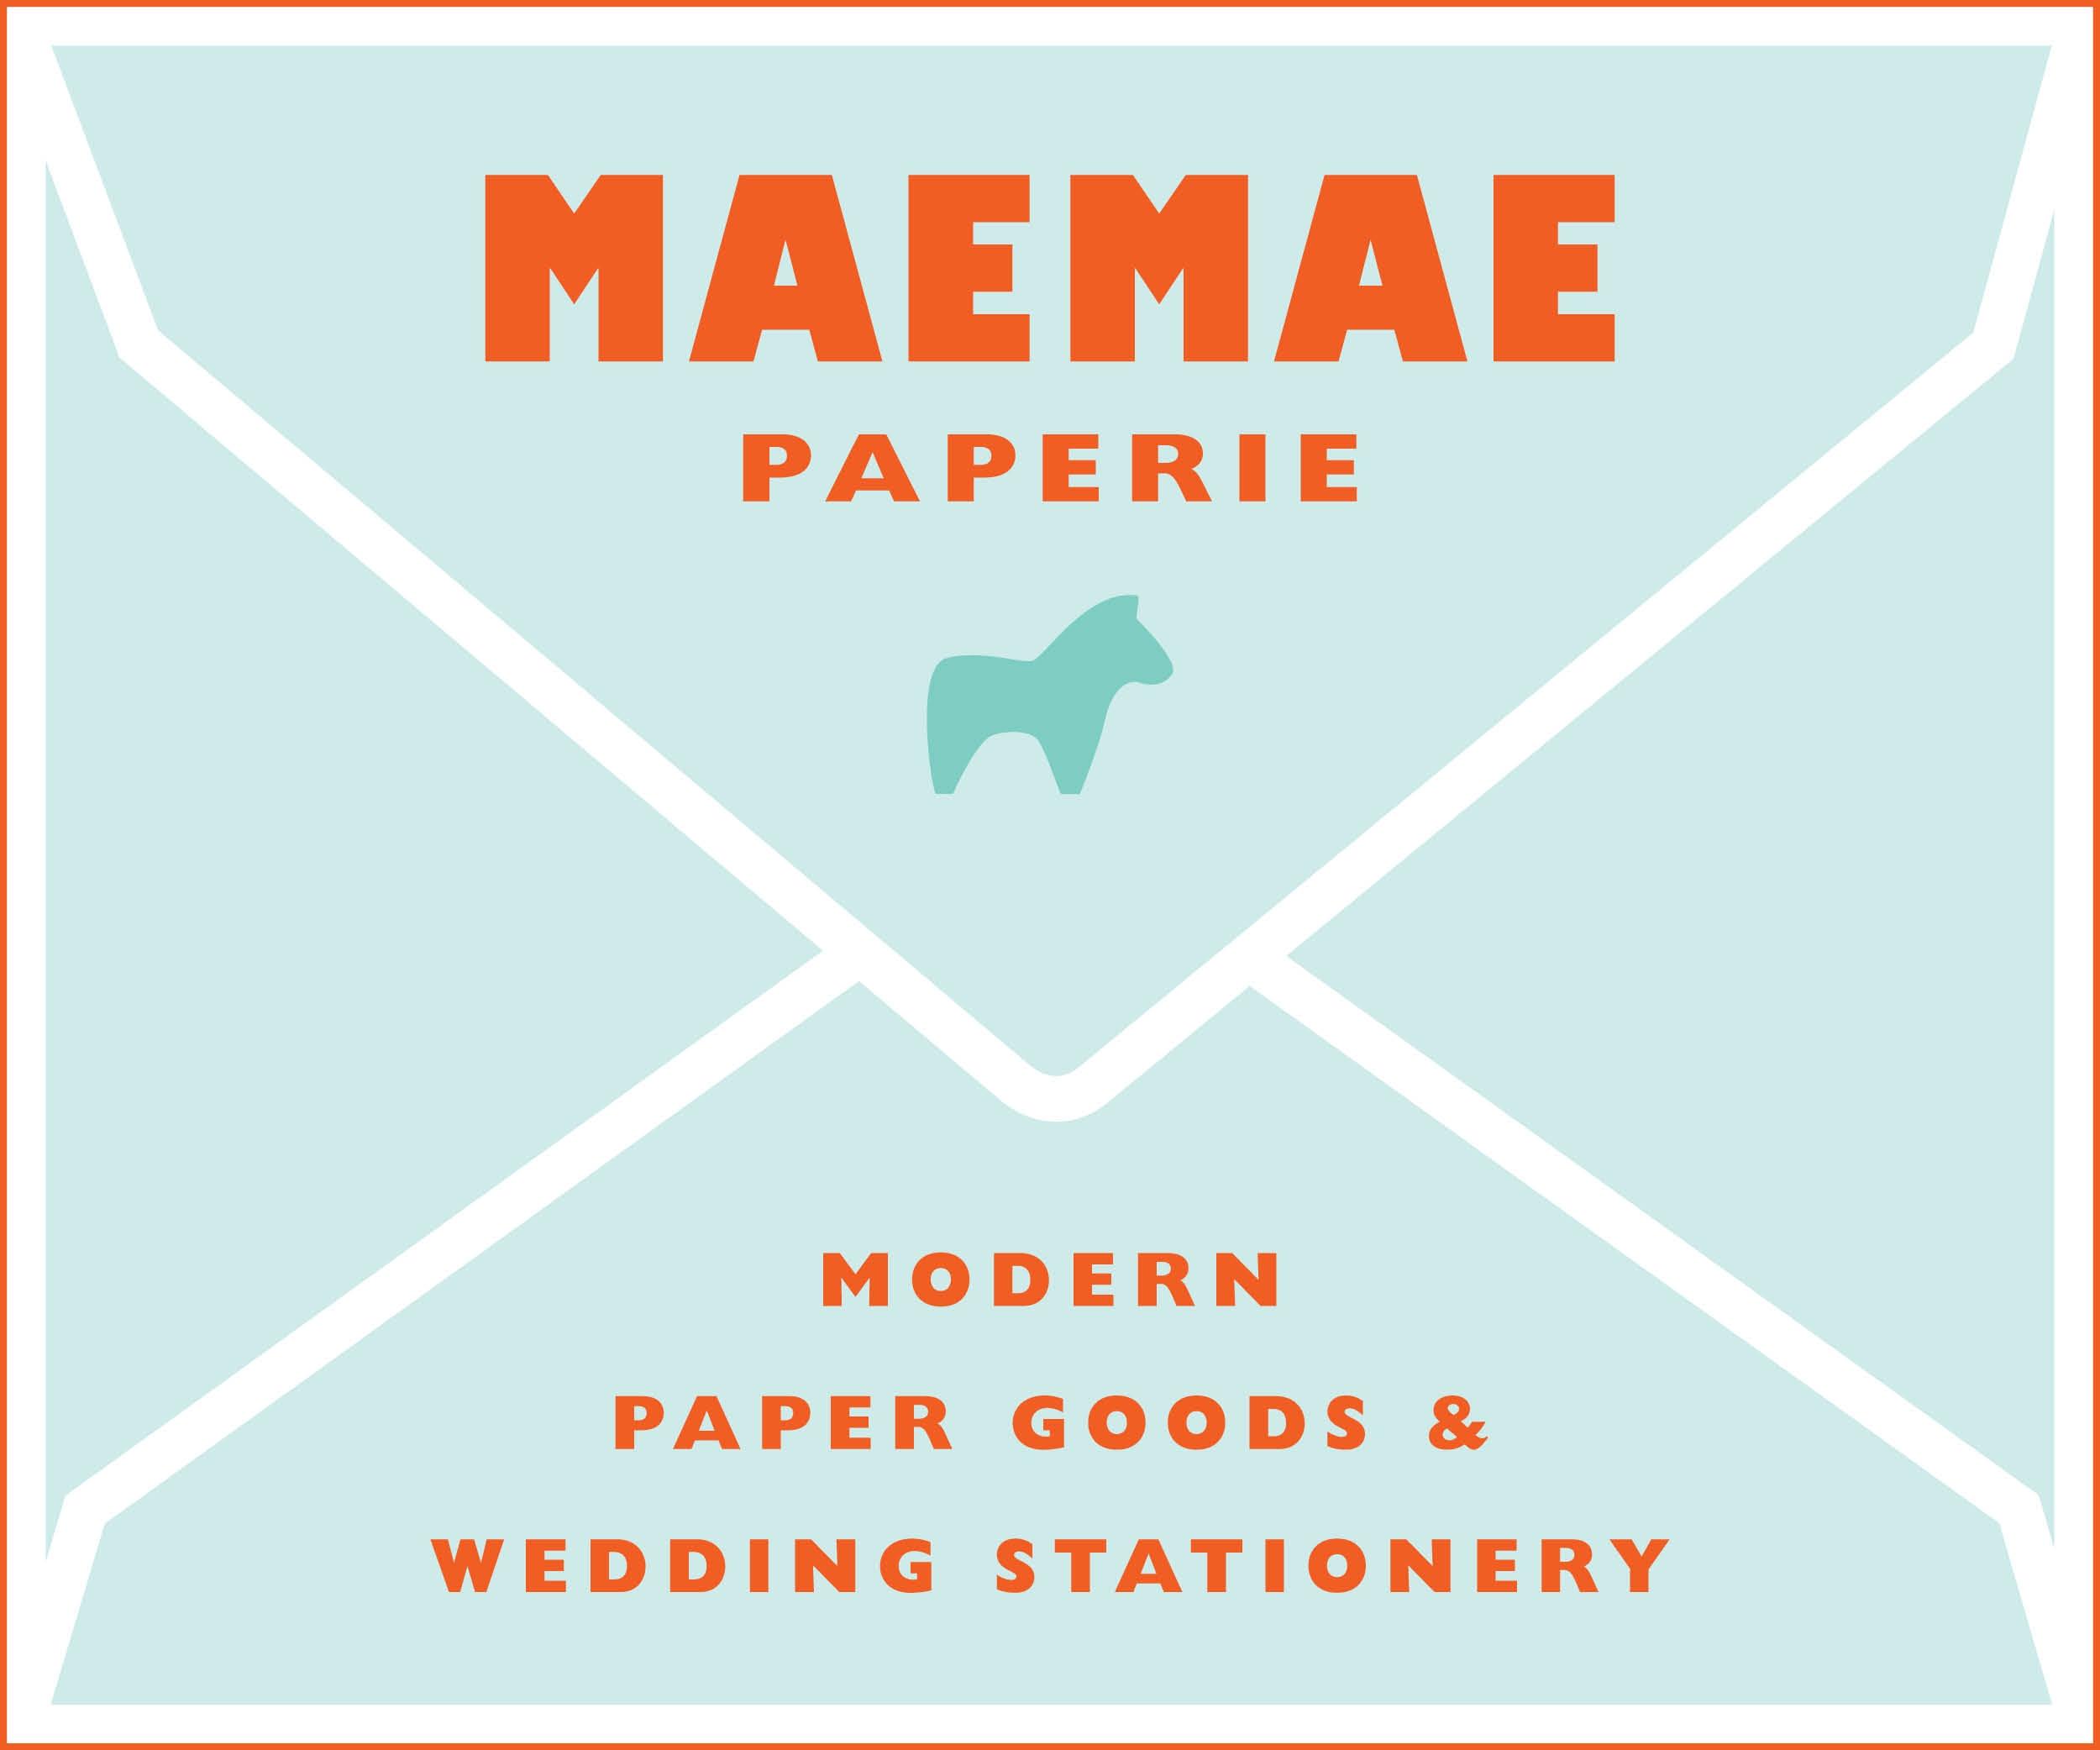 MaeMaepaper